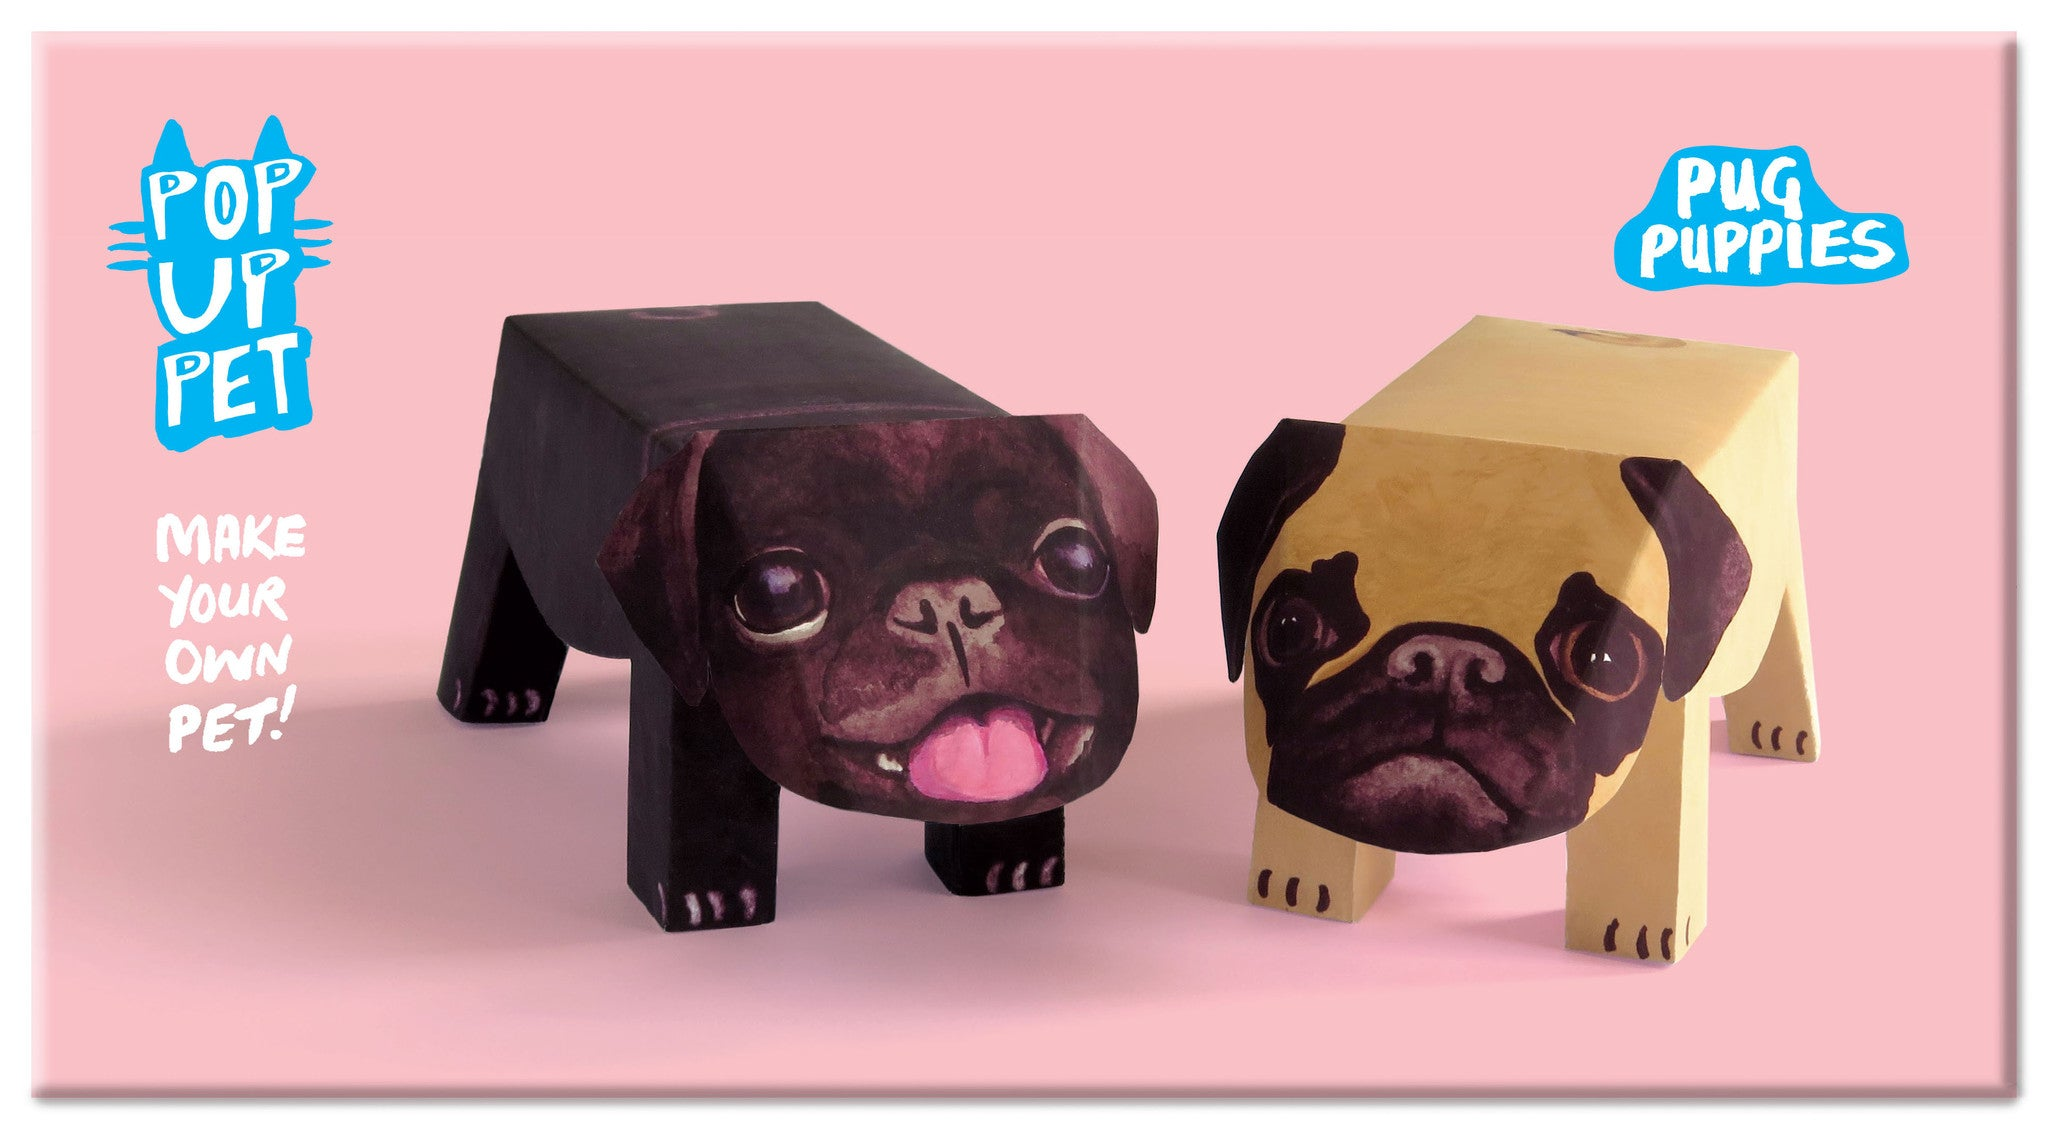 pug as pet pop up pet pug puppies www rosieflo co uk 2995